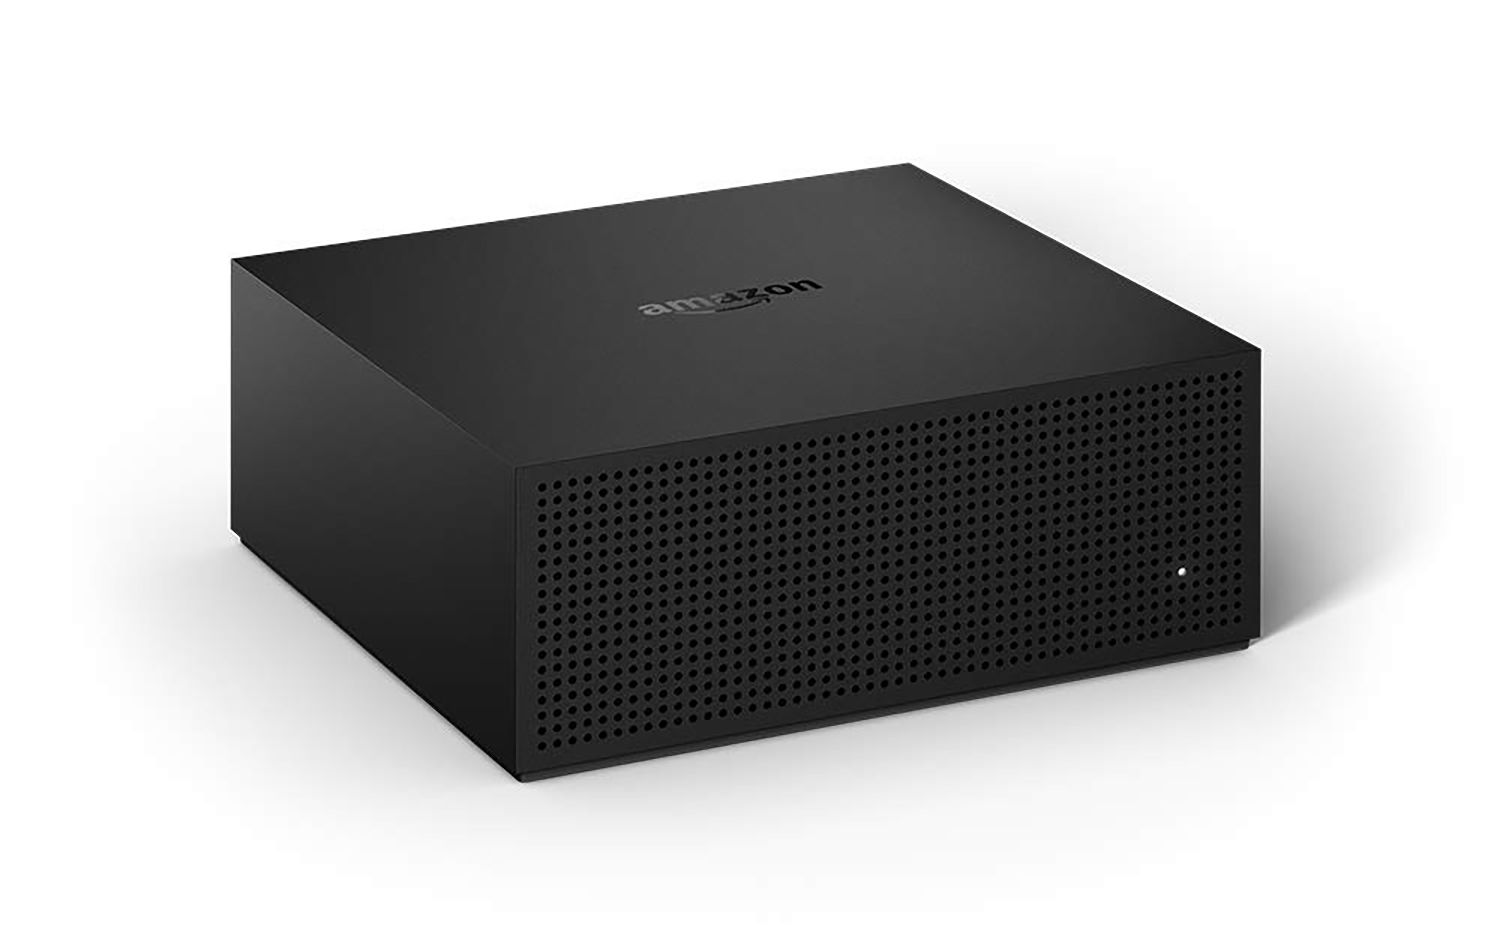 The Amazon Fire TV Recast, an over-the-air DVR.